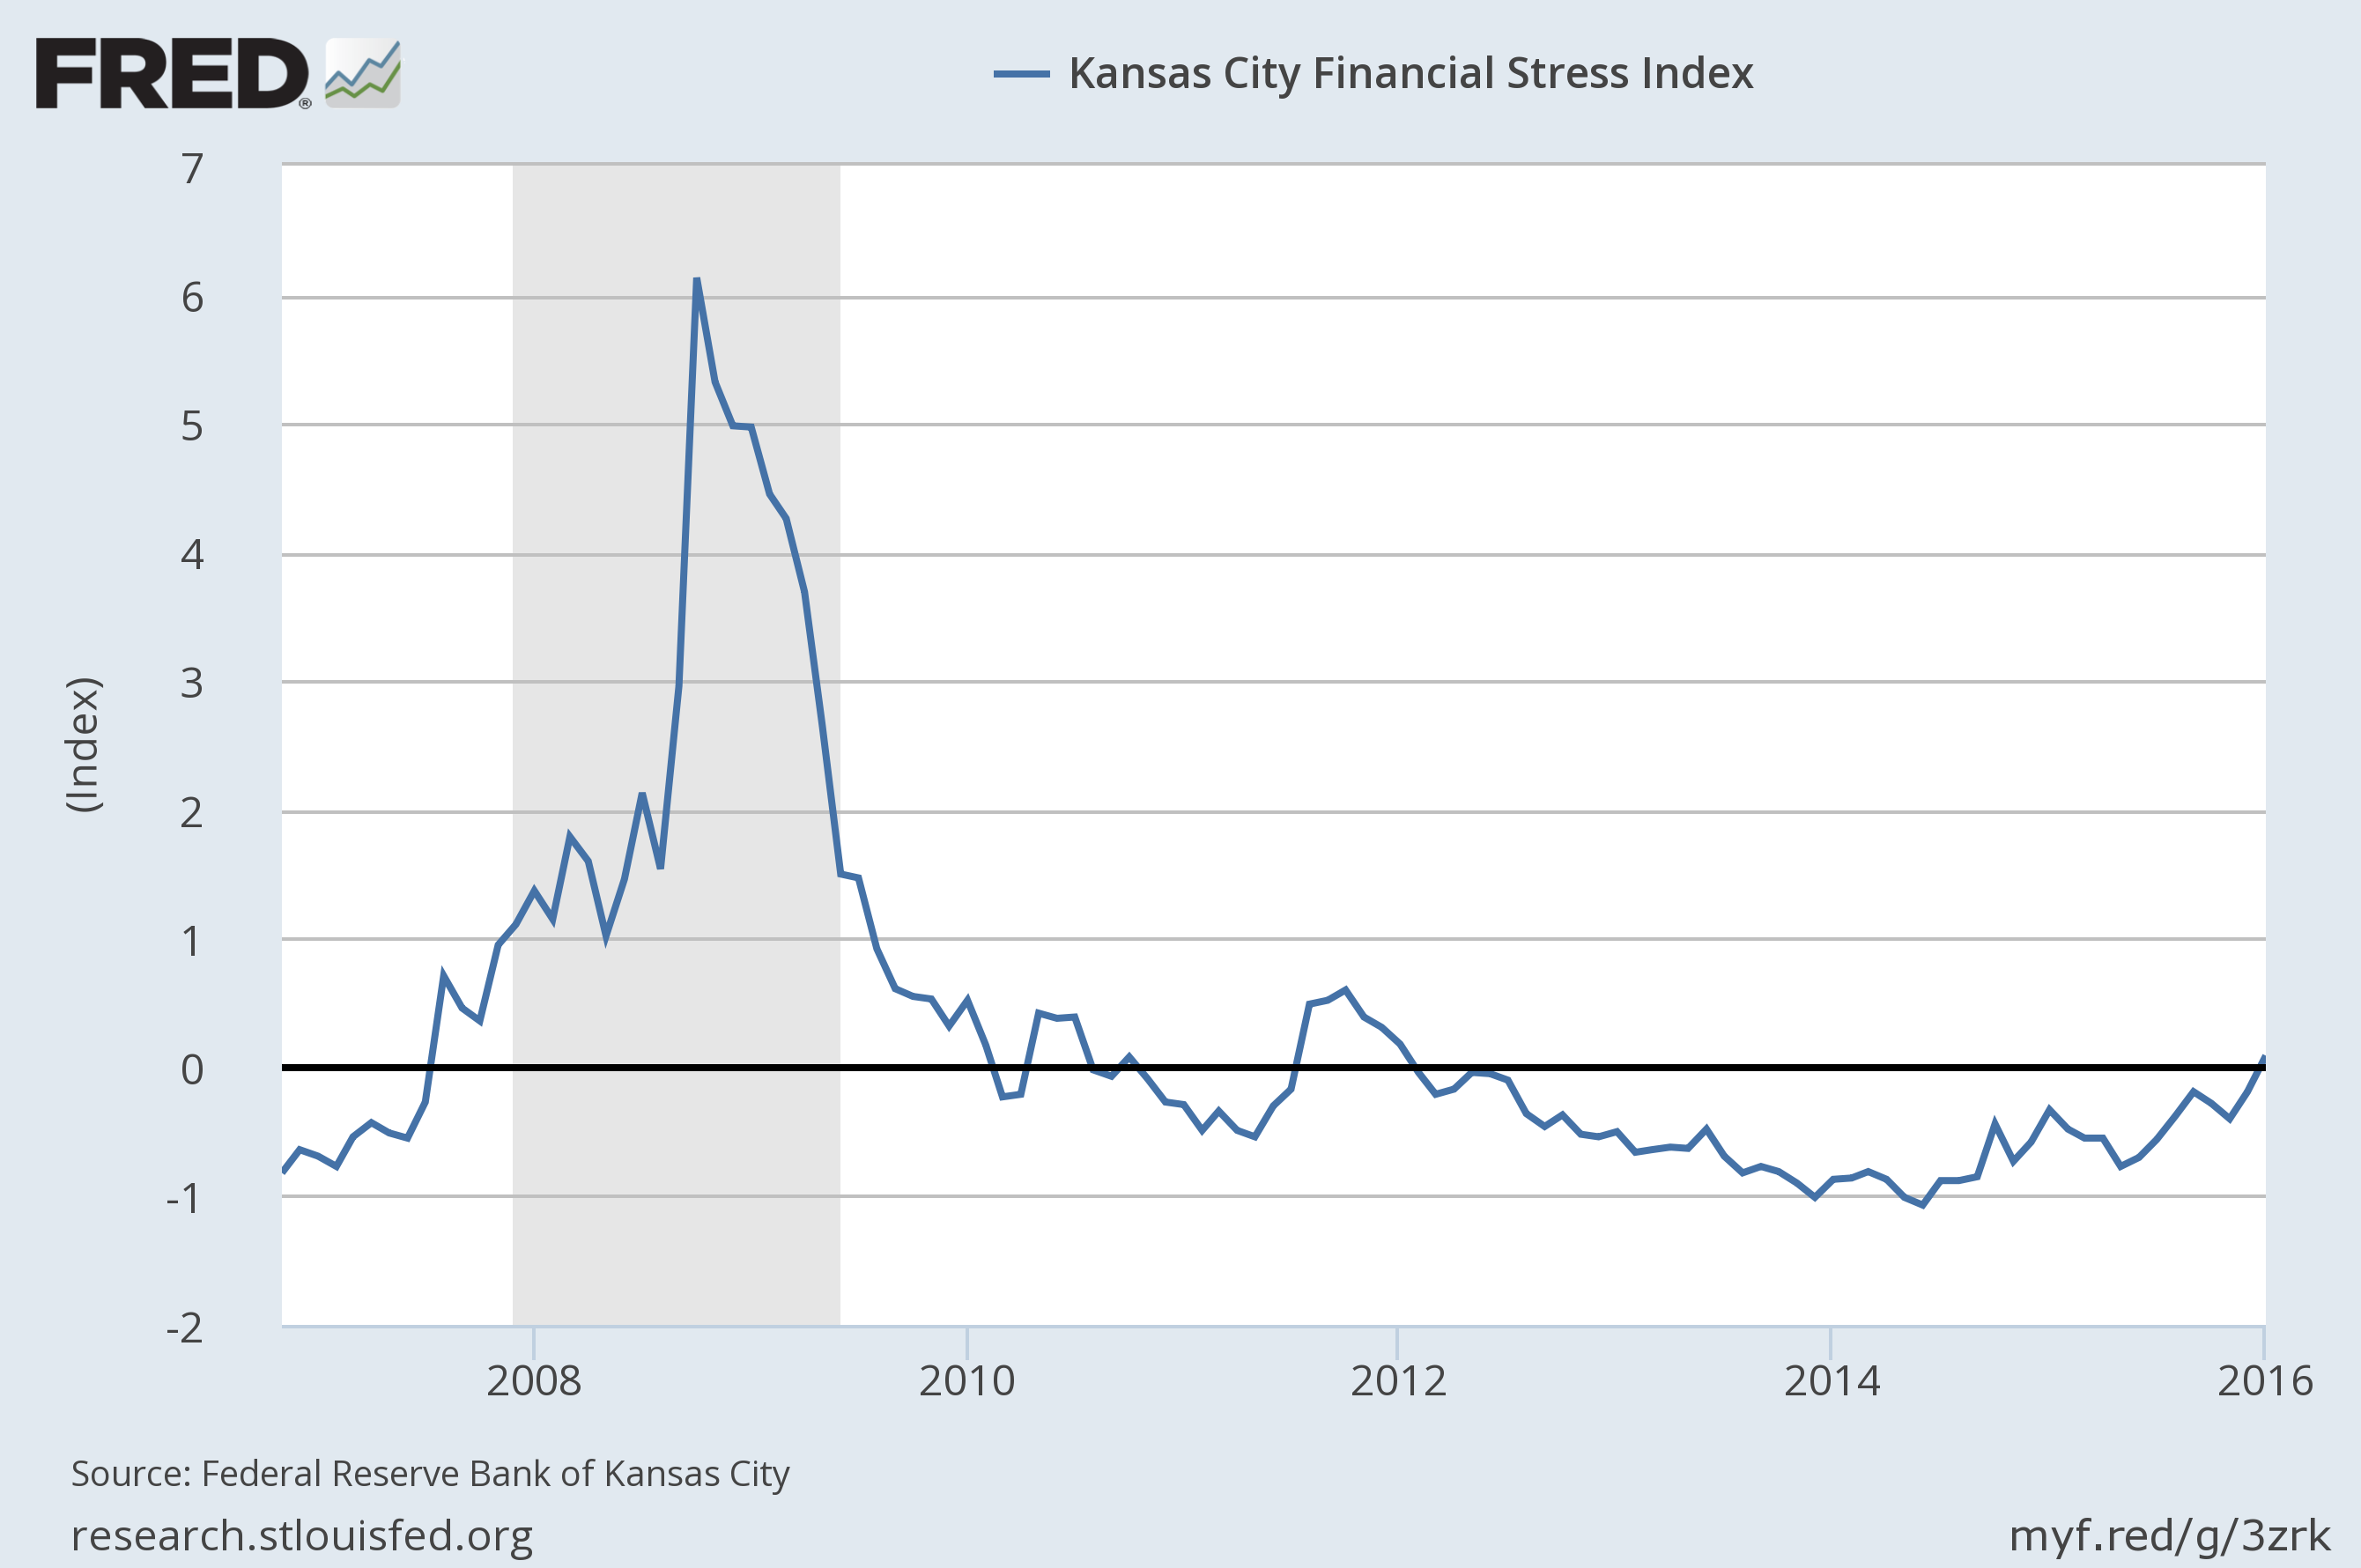 Kansas City Financial Stress Index